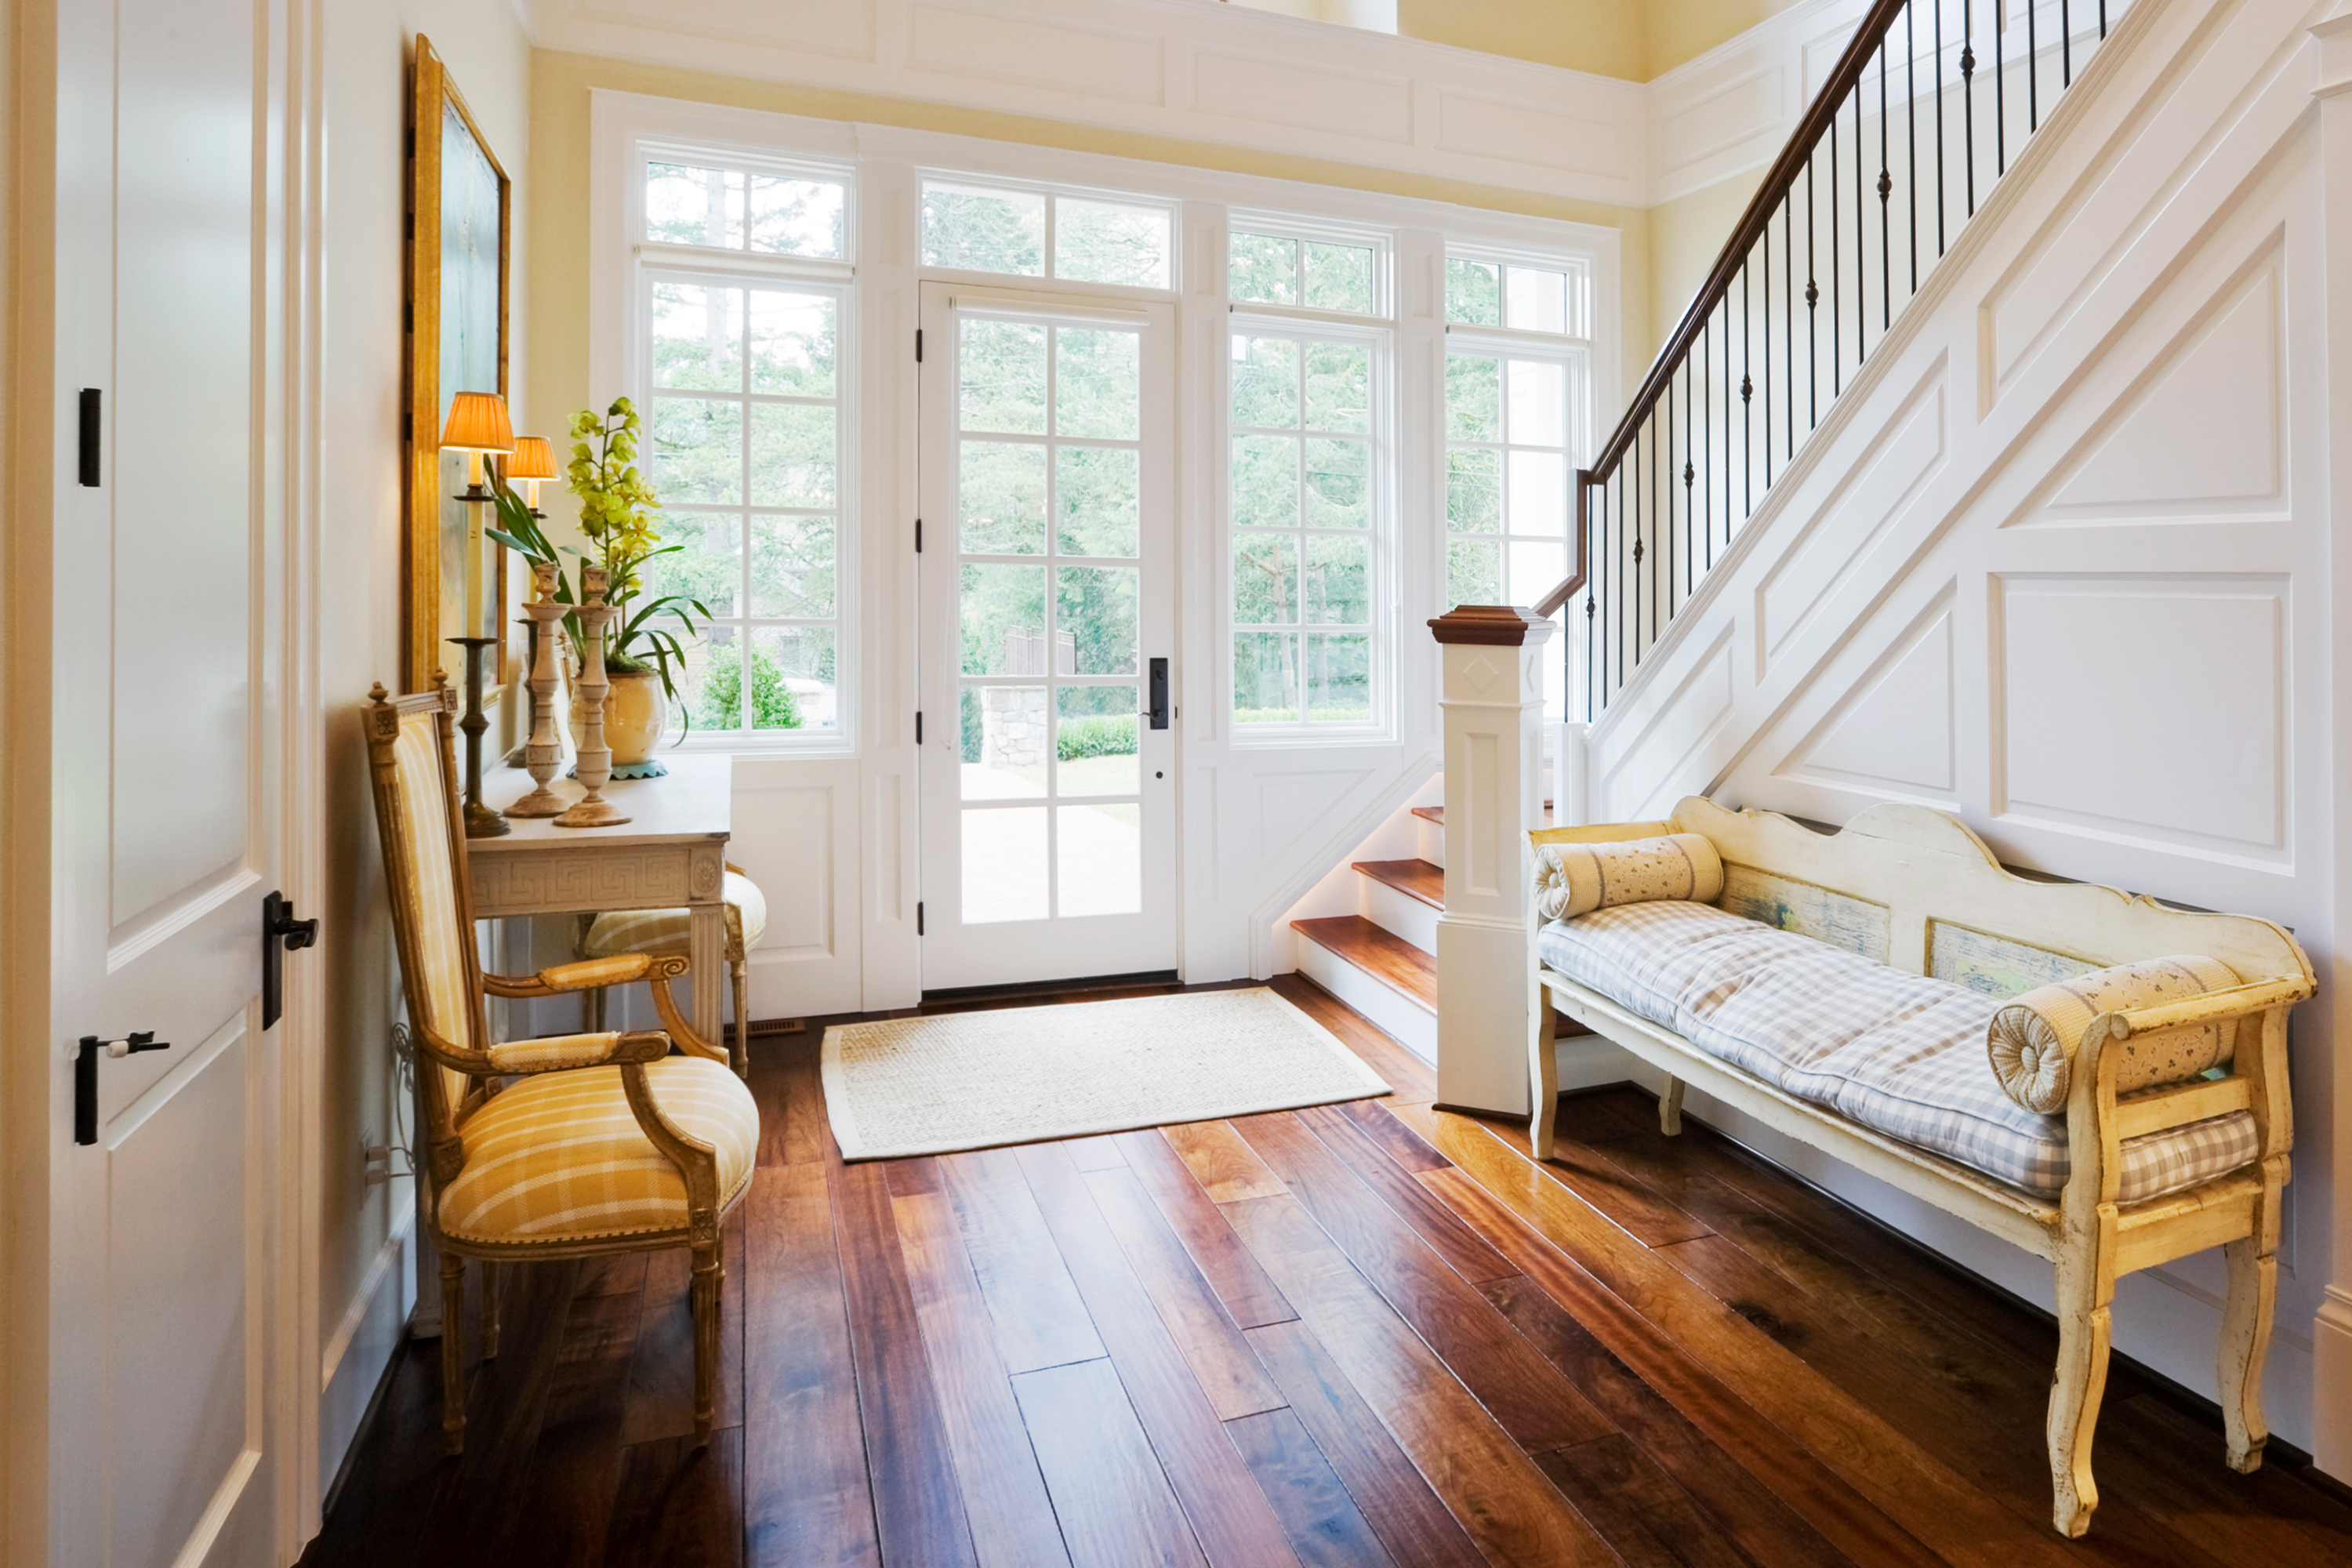 Foyer with wood flooring and staircase.